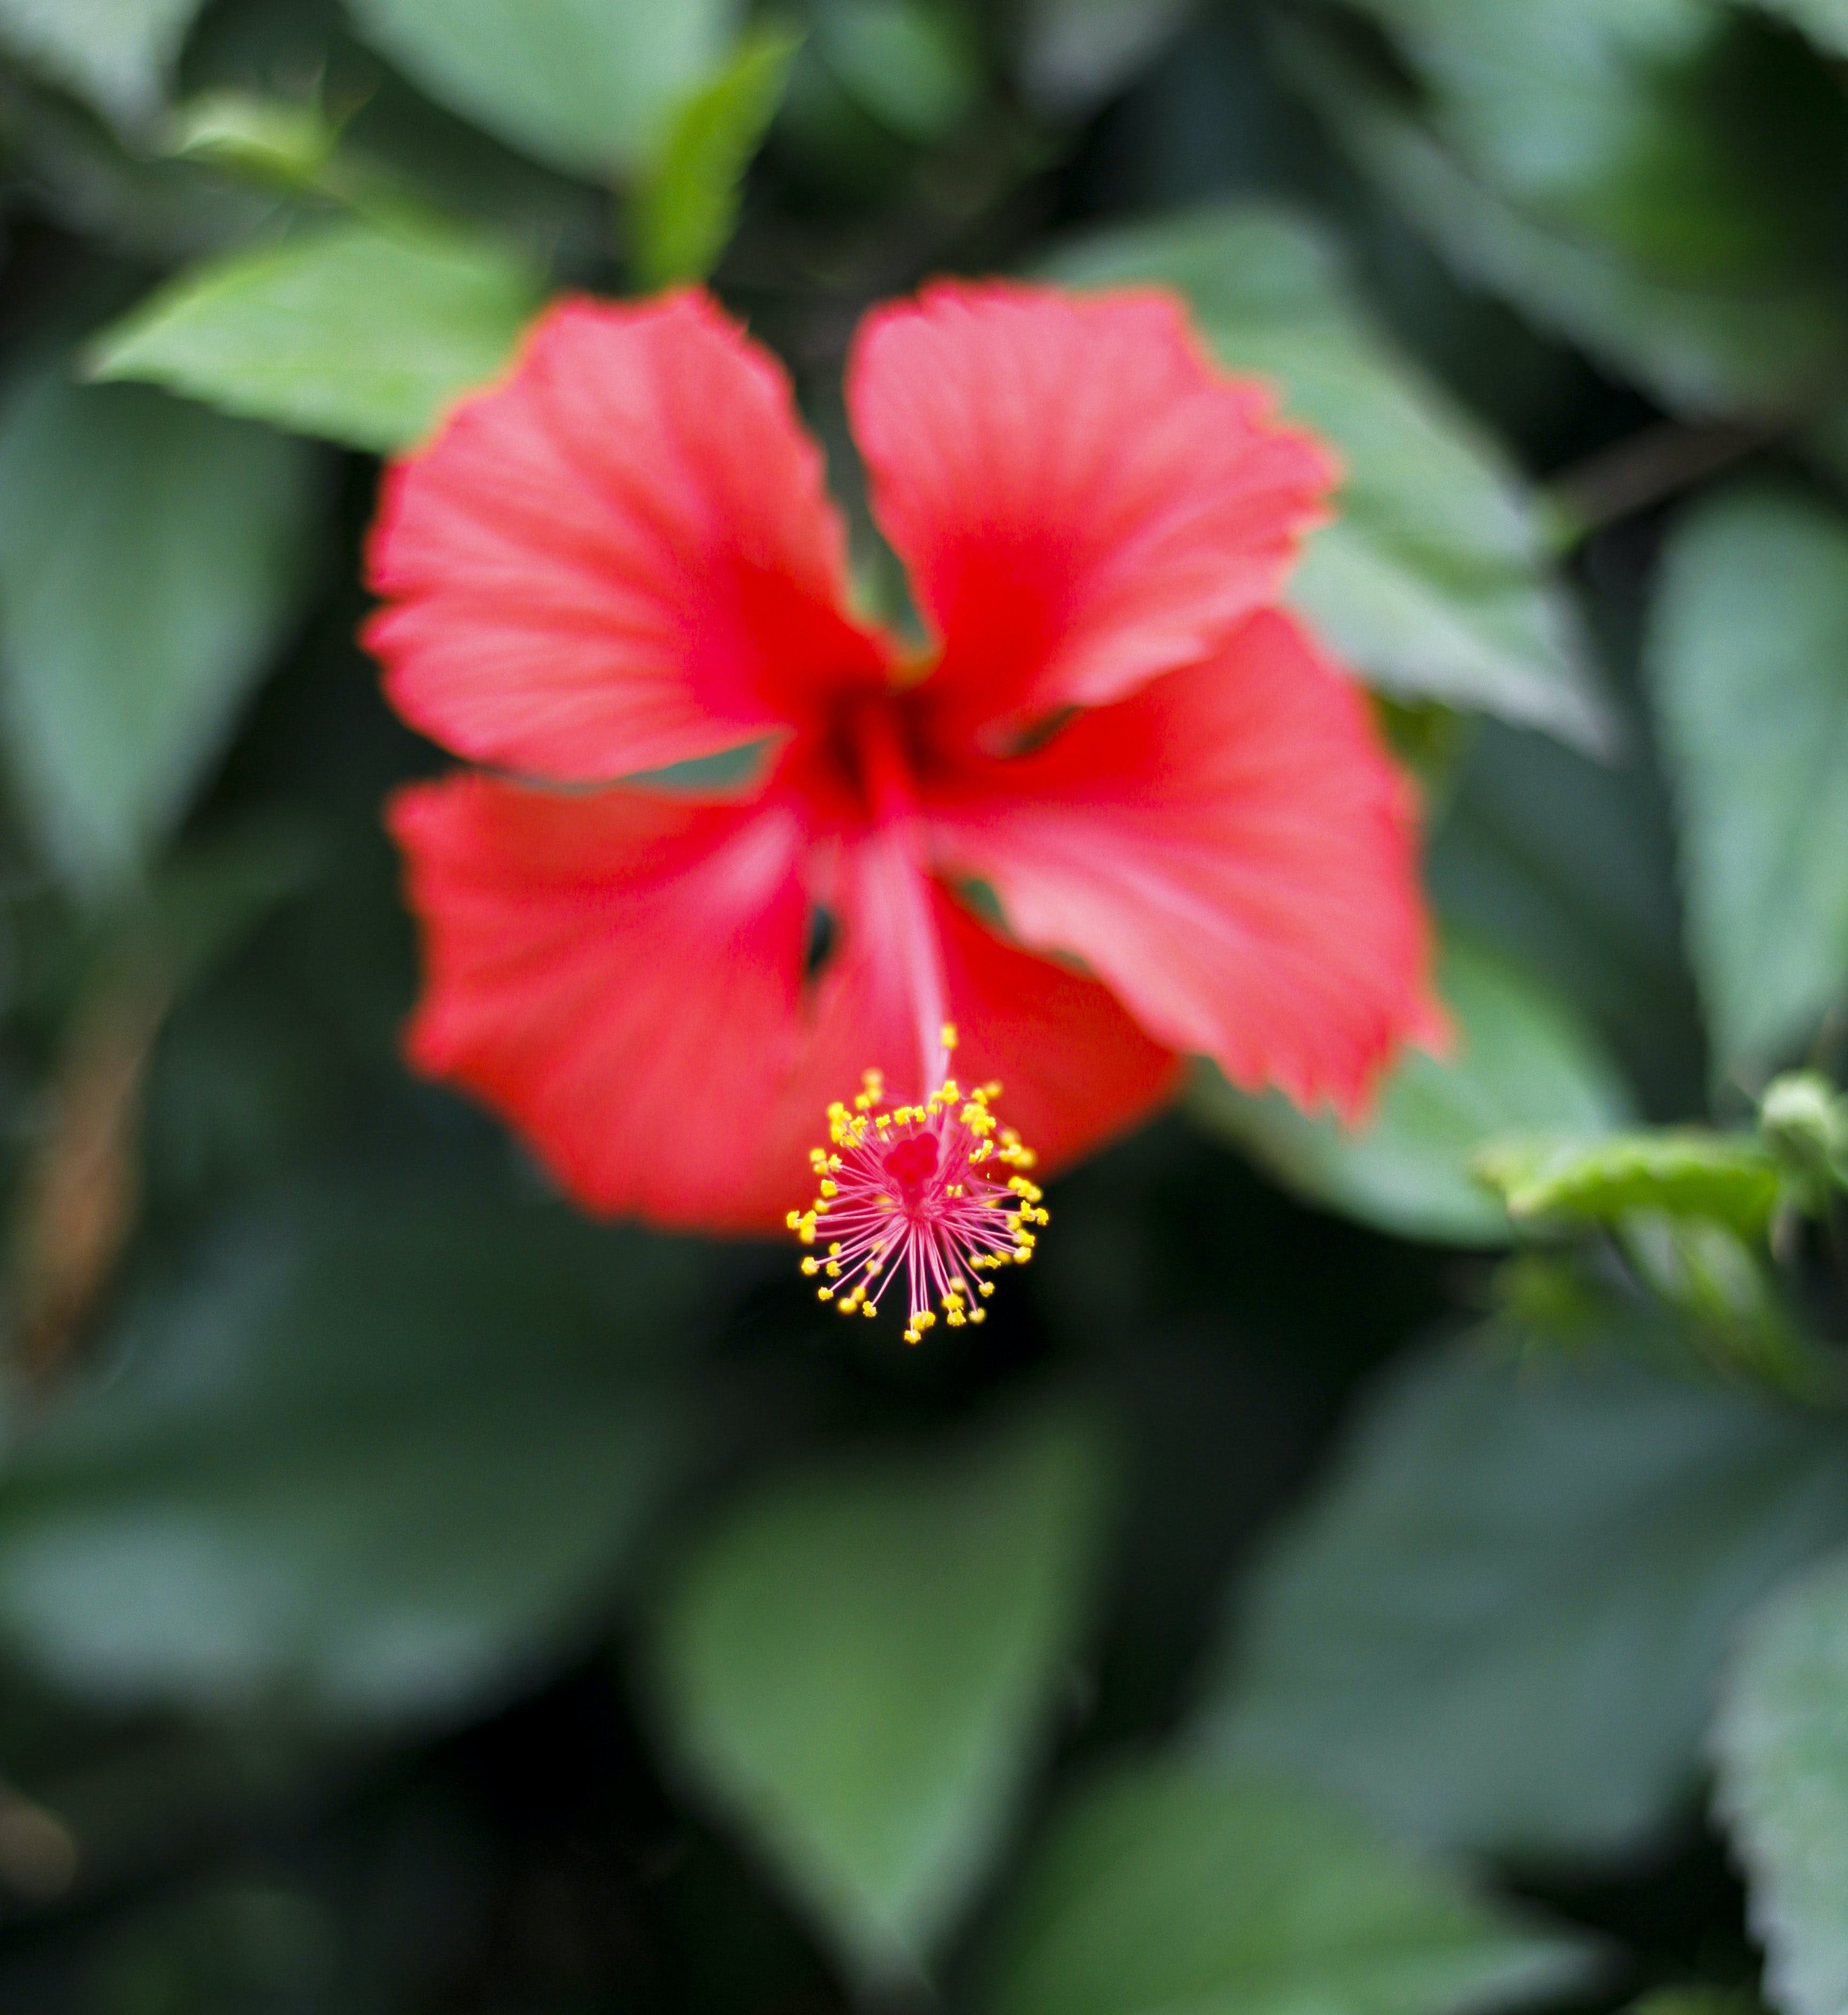 Free stock photo of beautiful flowers, red flower